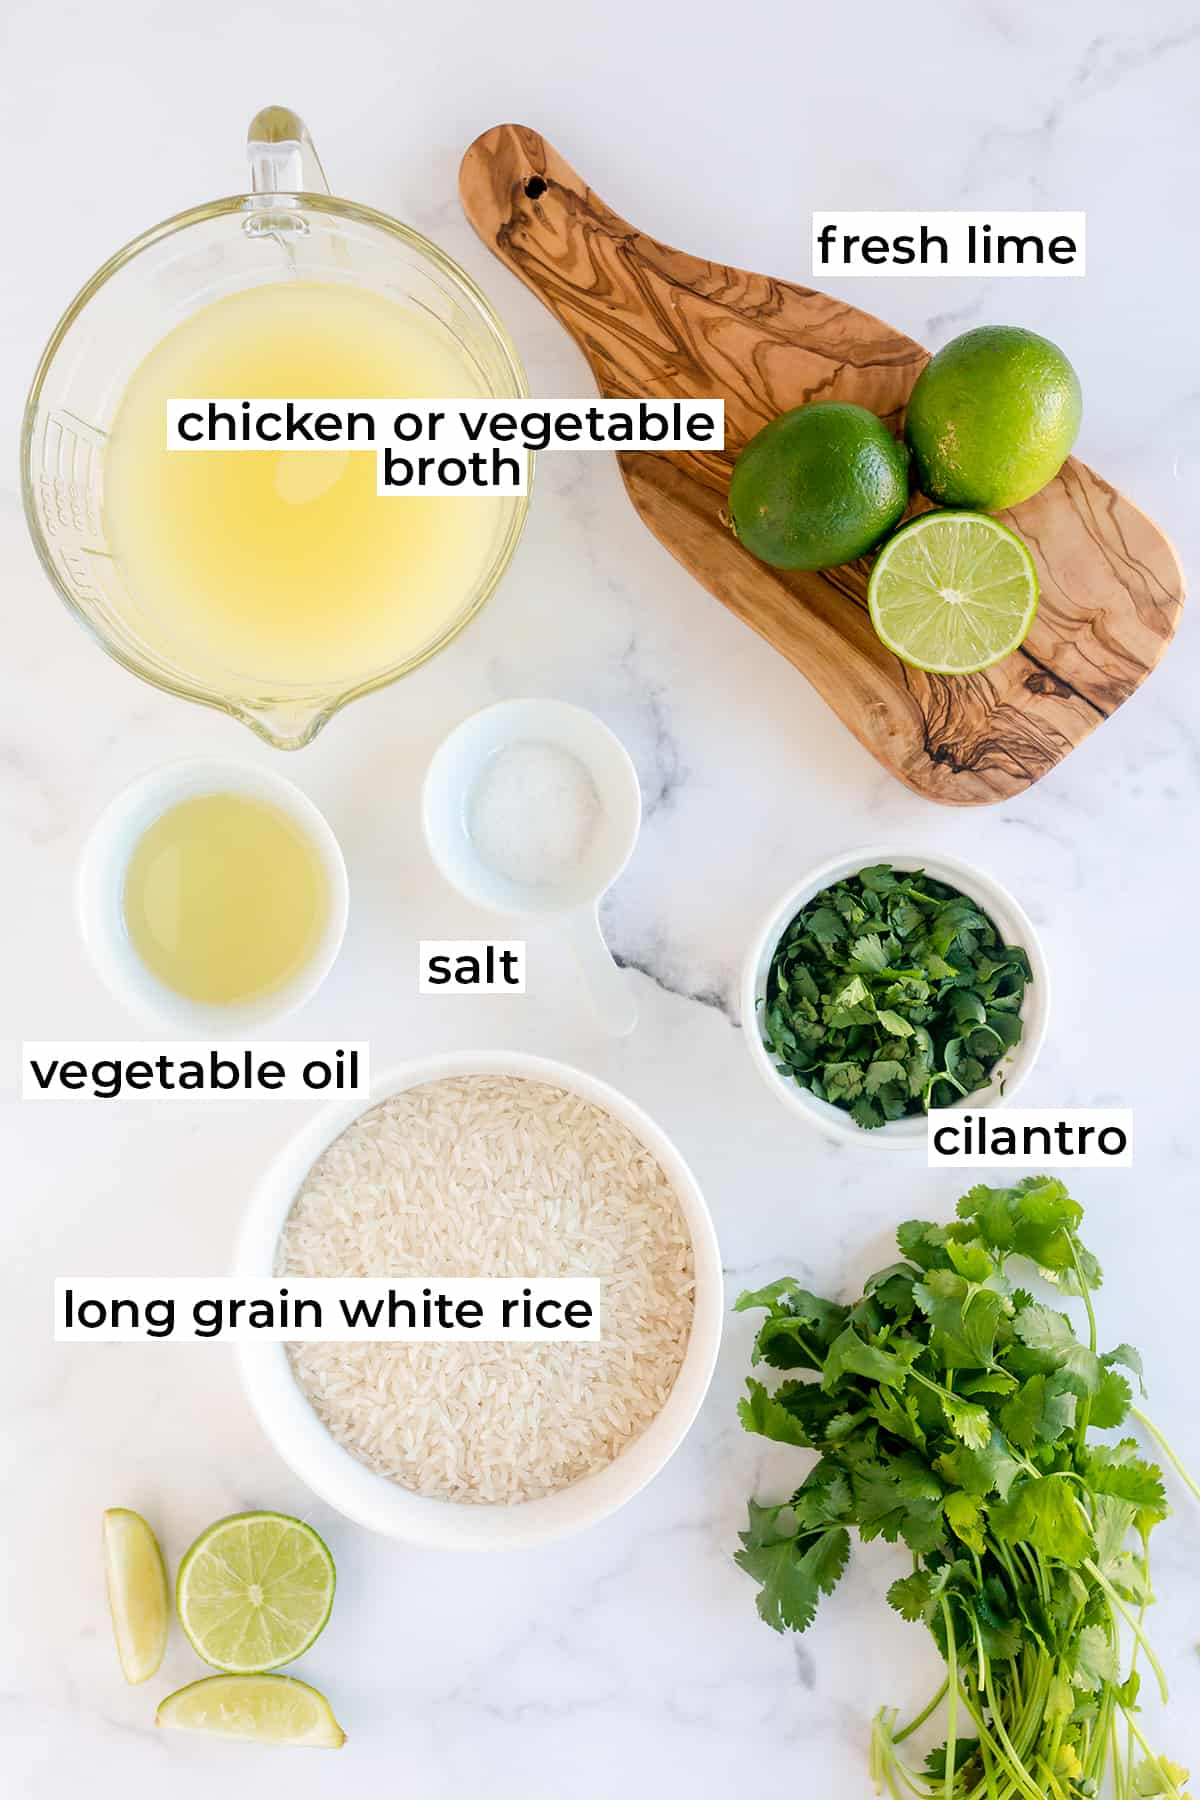 The ingredients for making Cilantro Lime Rice with text overlay.